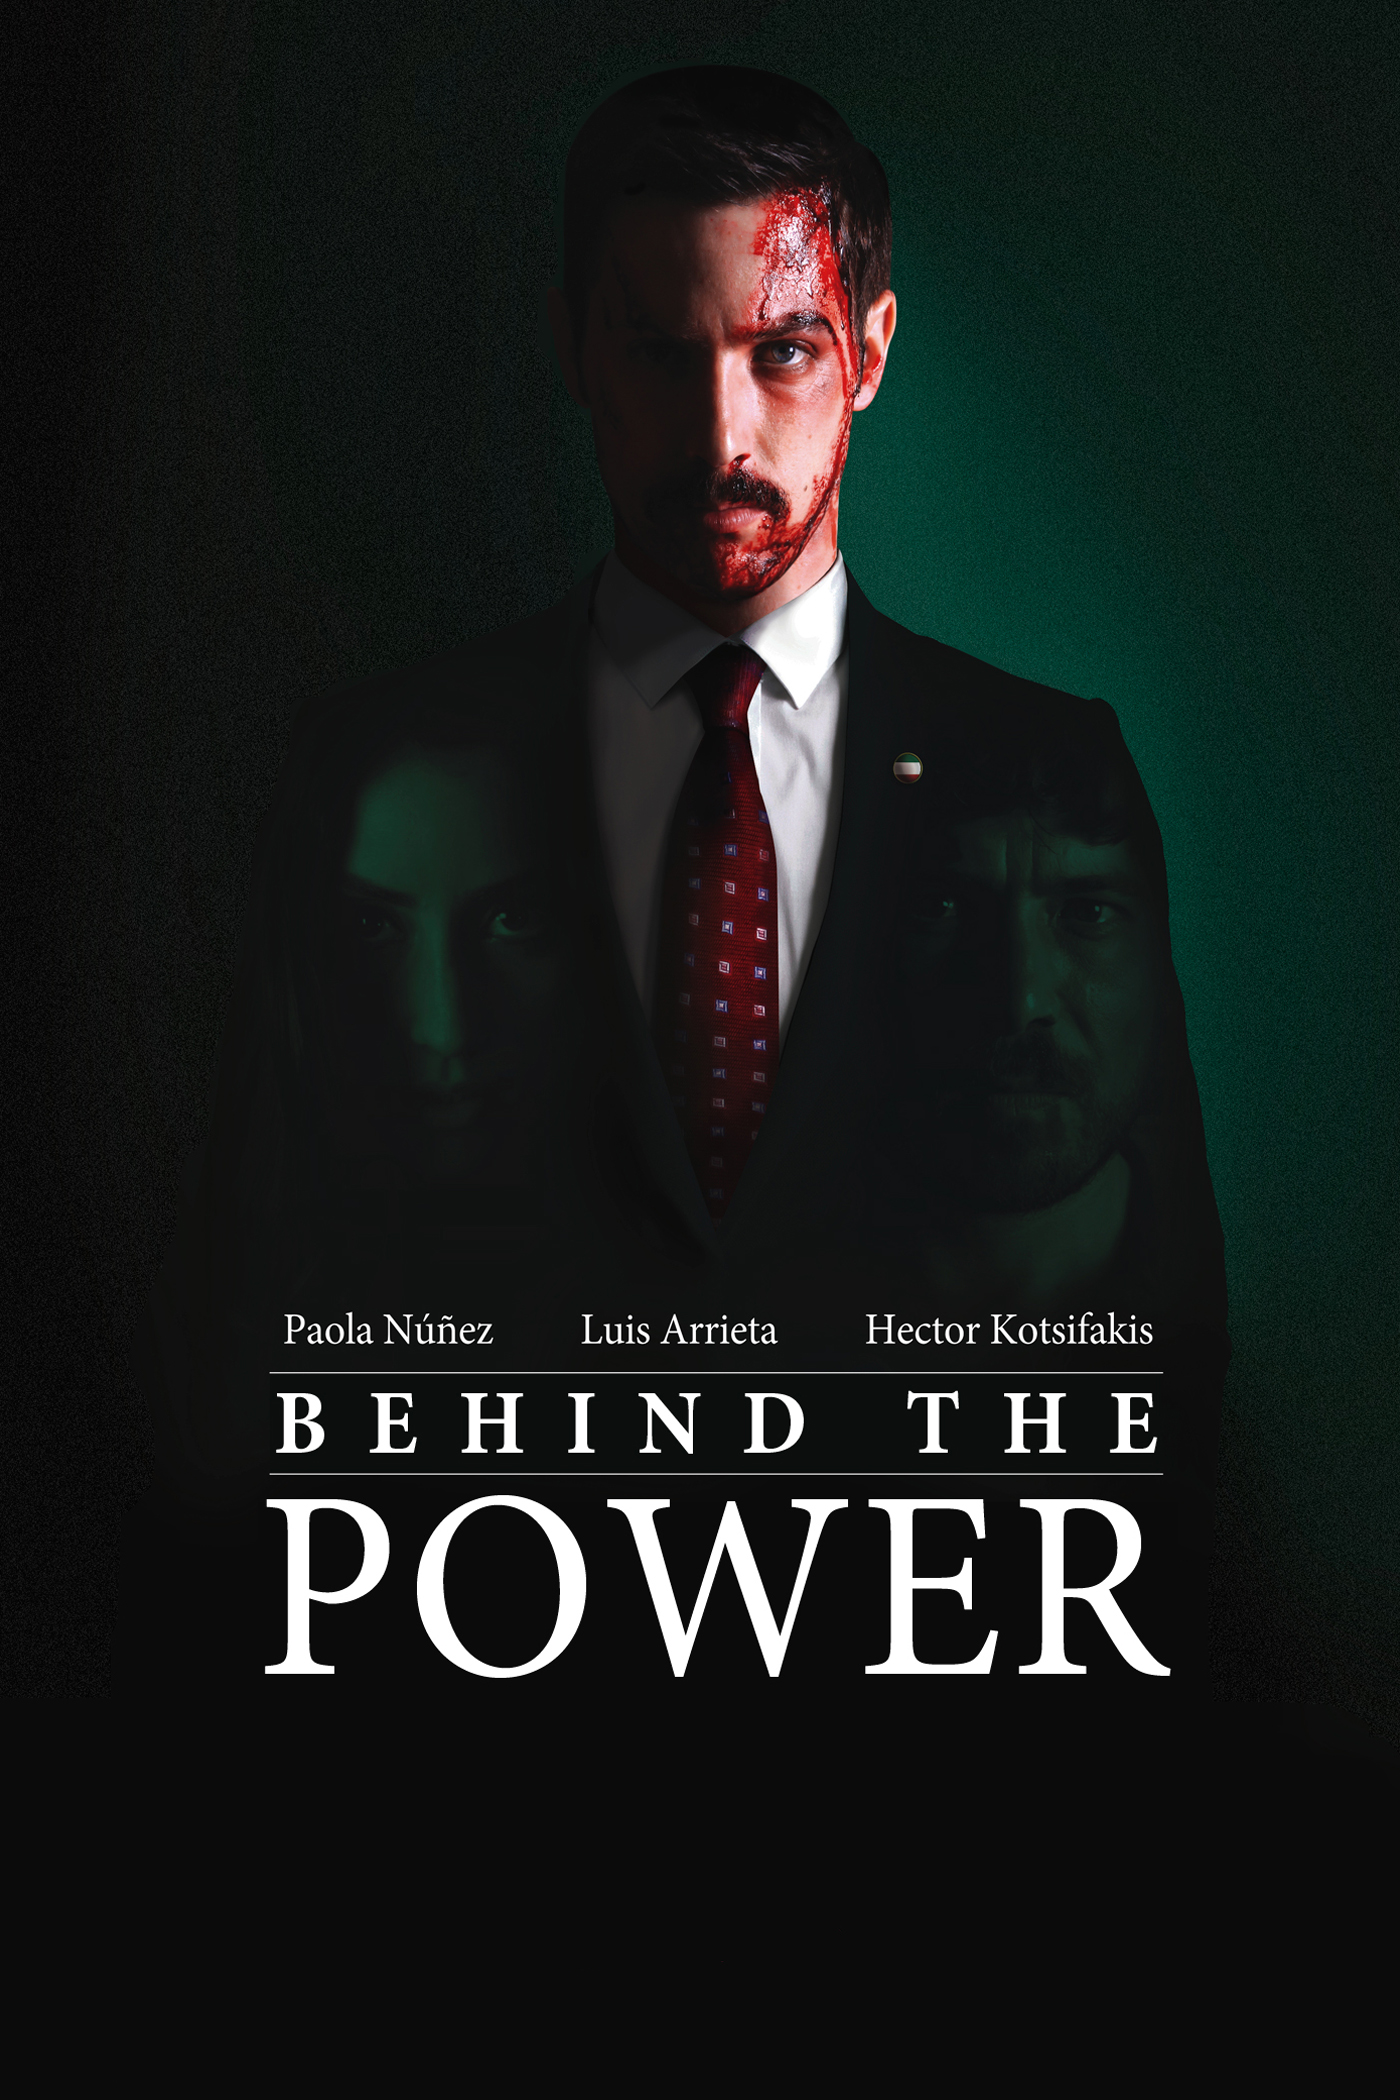 Behind the power - Poster.jpg